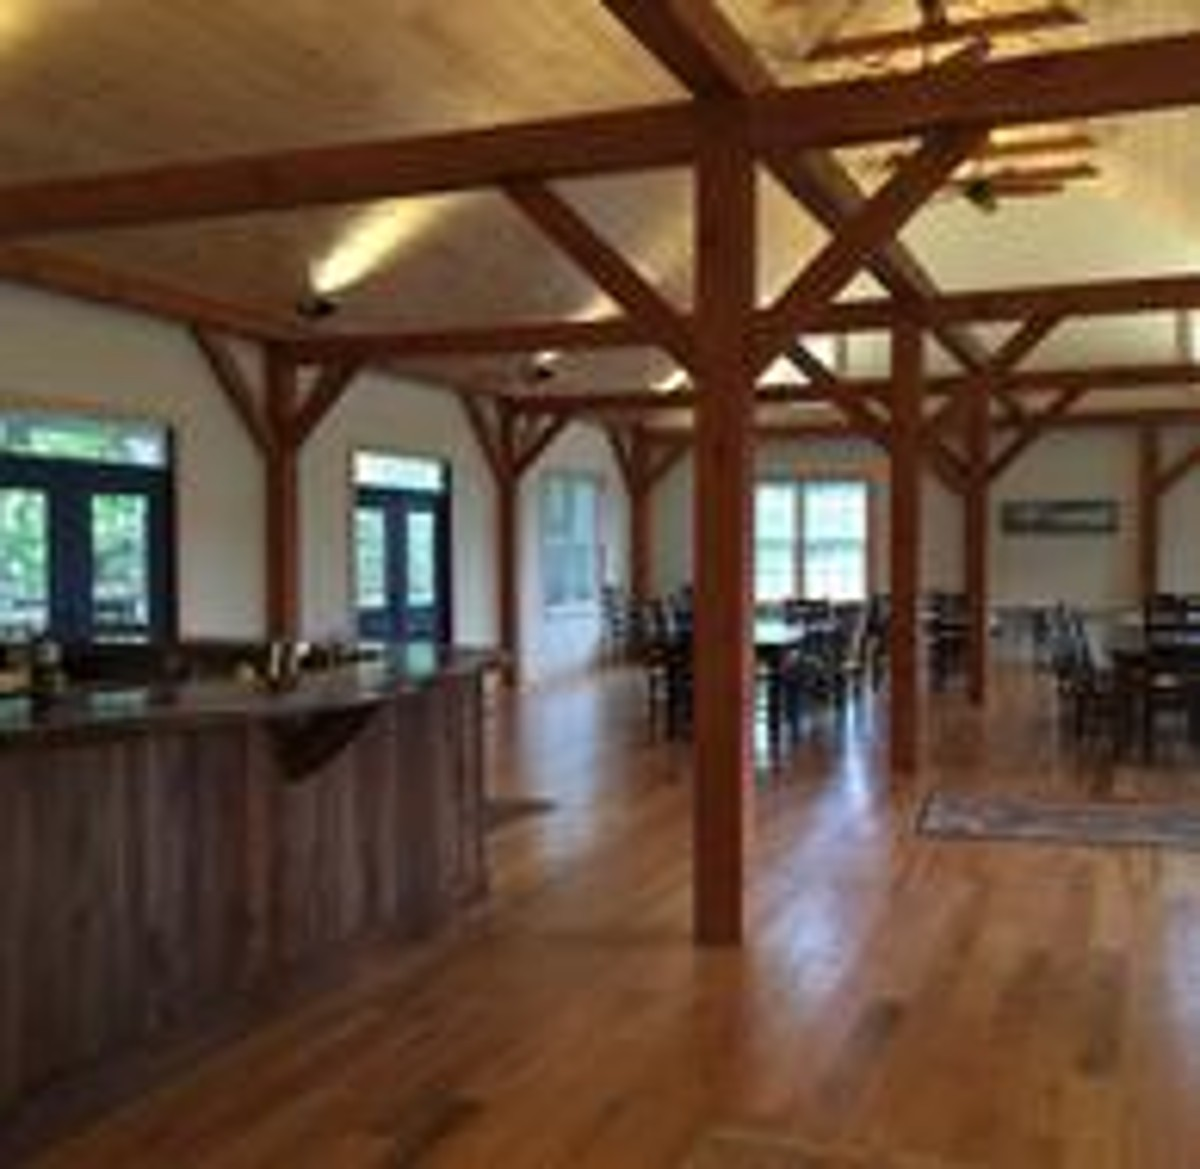 Zephaniah's new timber frame barn is a great venue for groups, meetings, and wonderful events